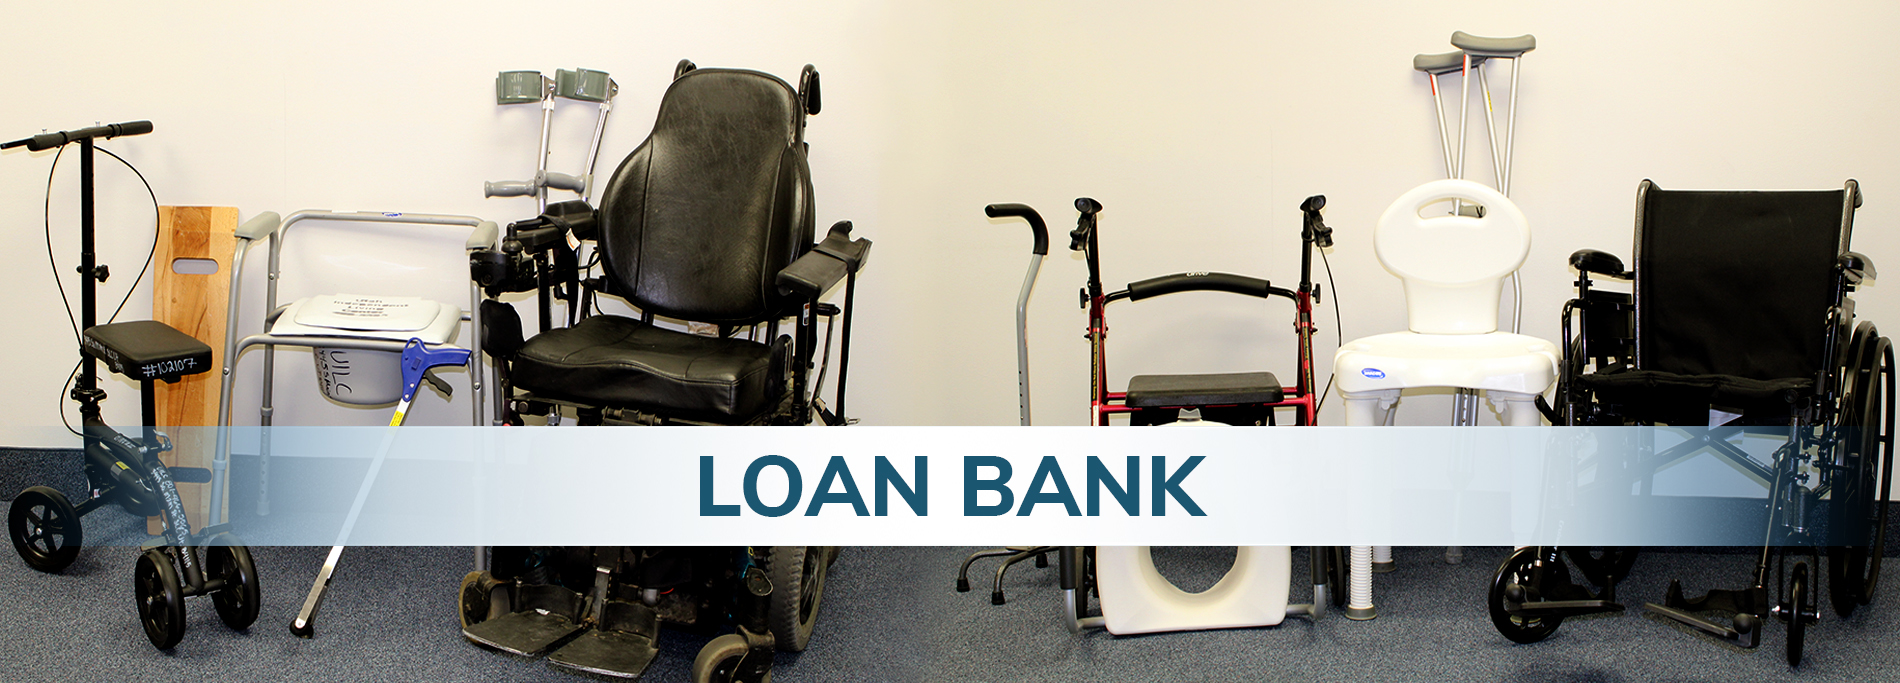 Loan Bank - Header